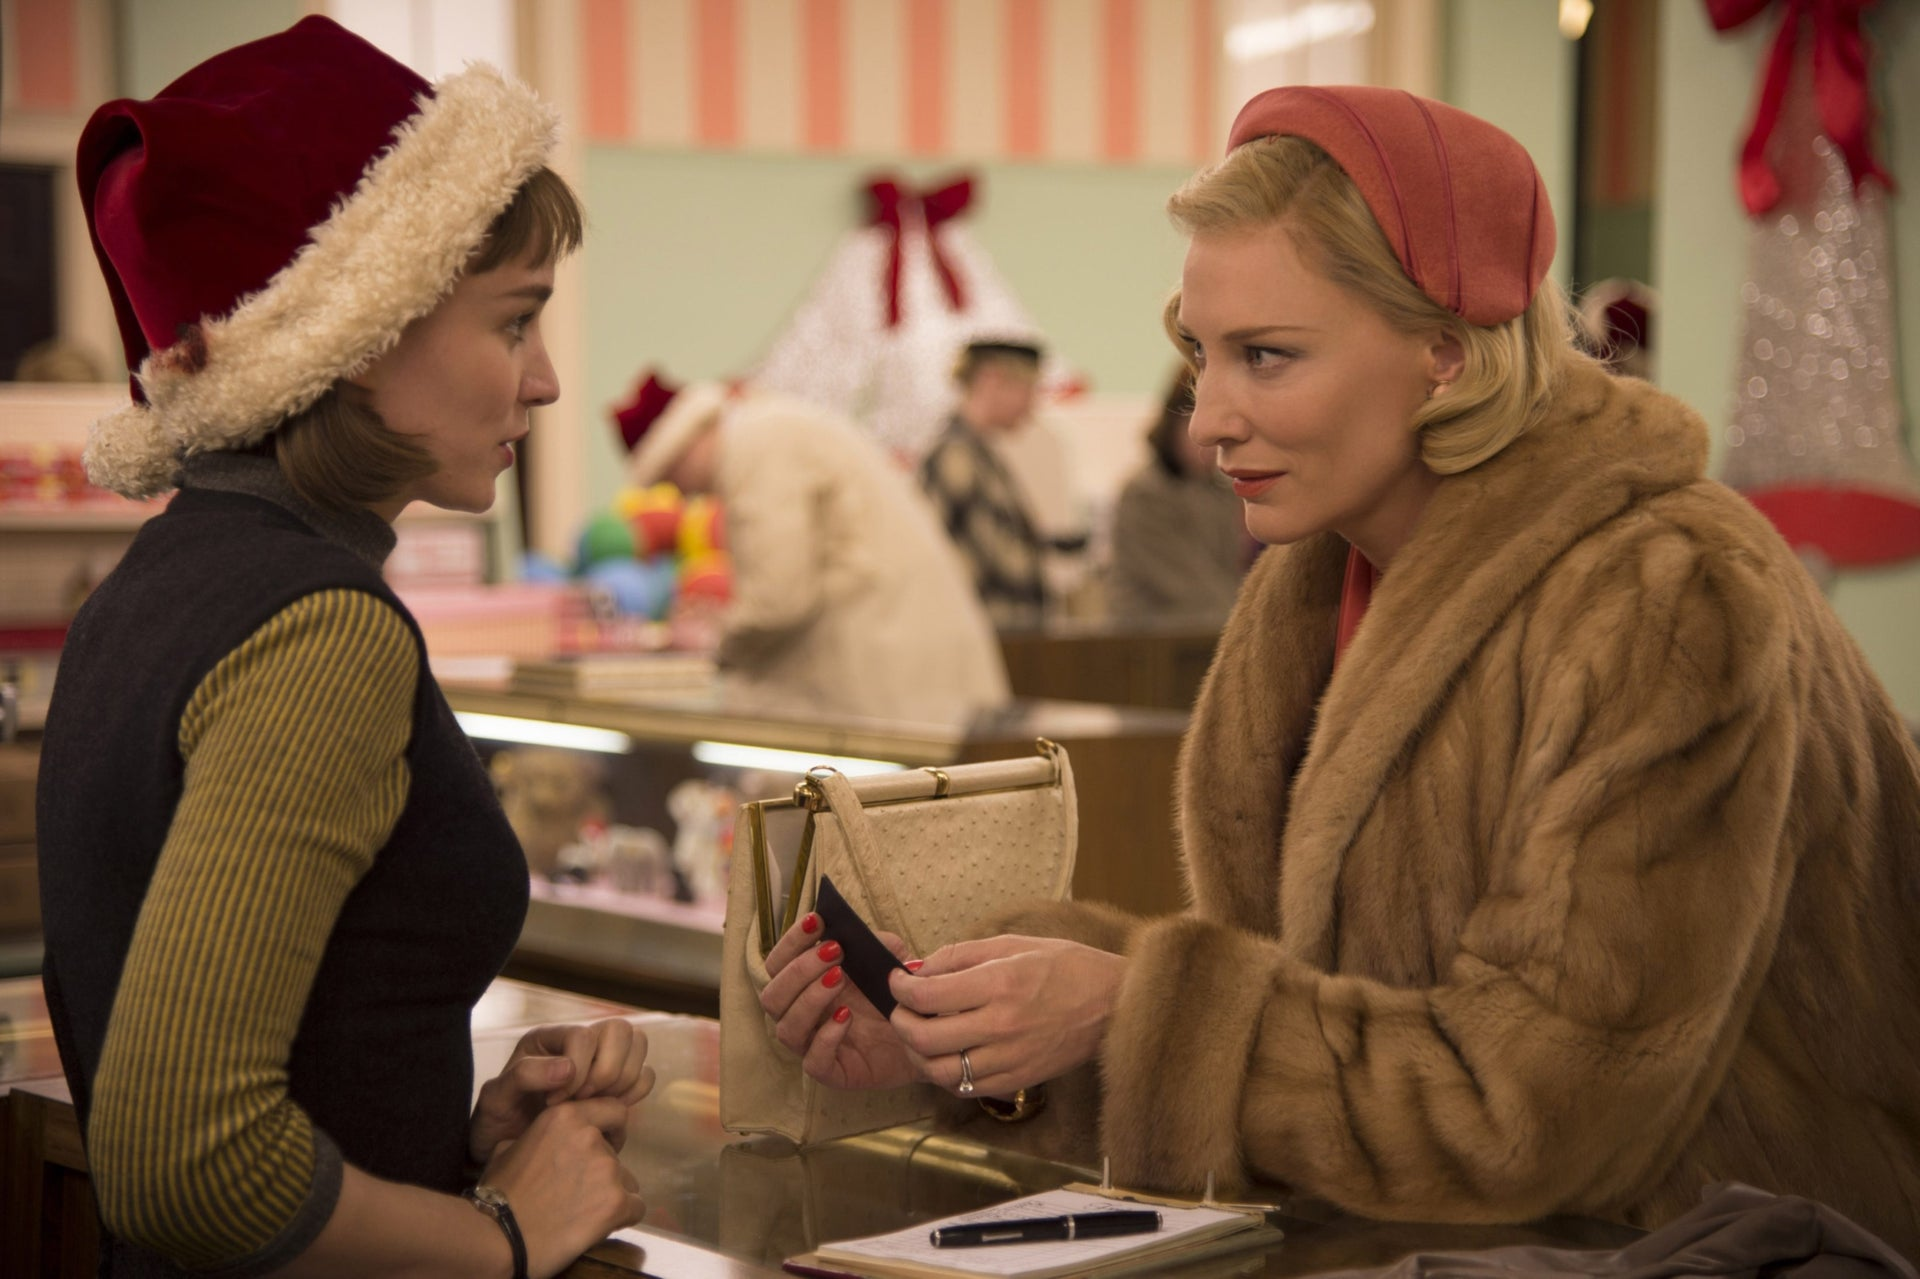 Rooney Mara, left, as Therese Belivet, and Cate Blanchett, as Carol Aird, in a scene from 'Carol.'